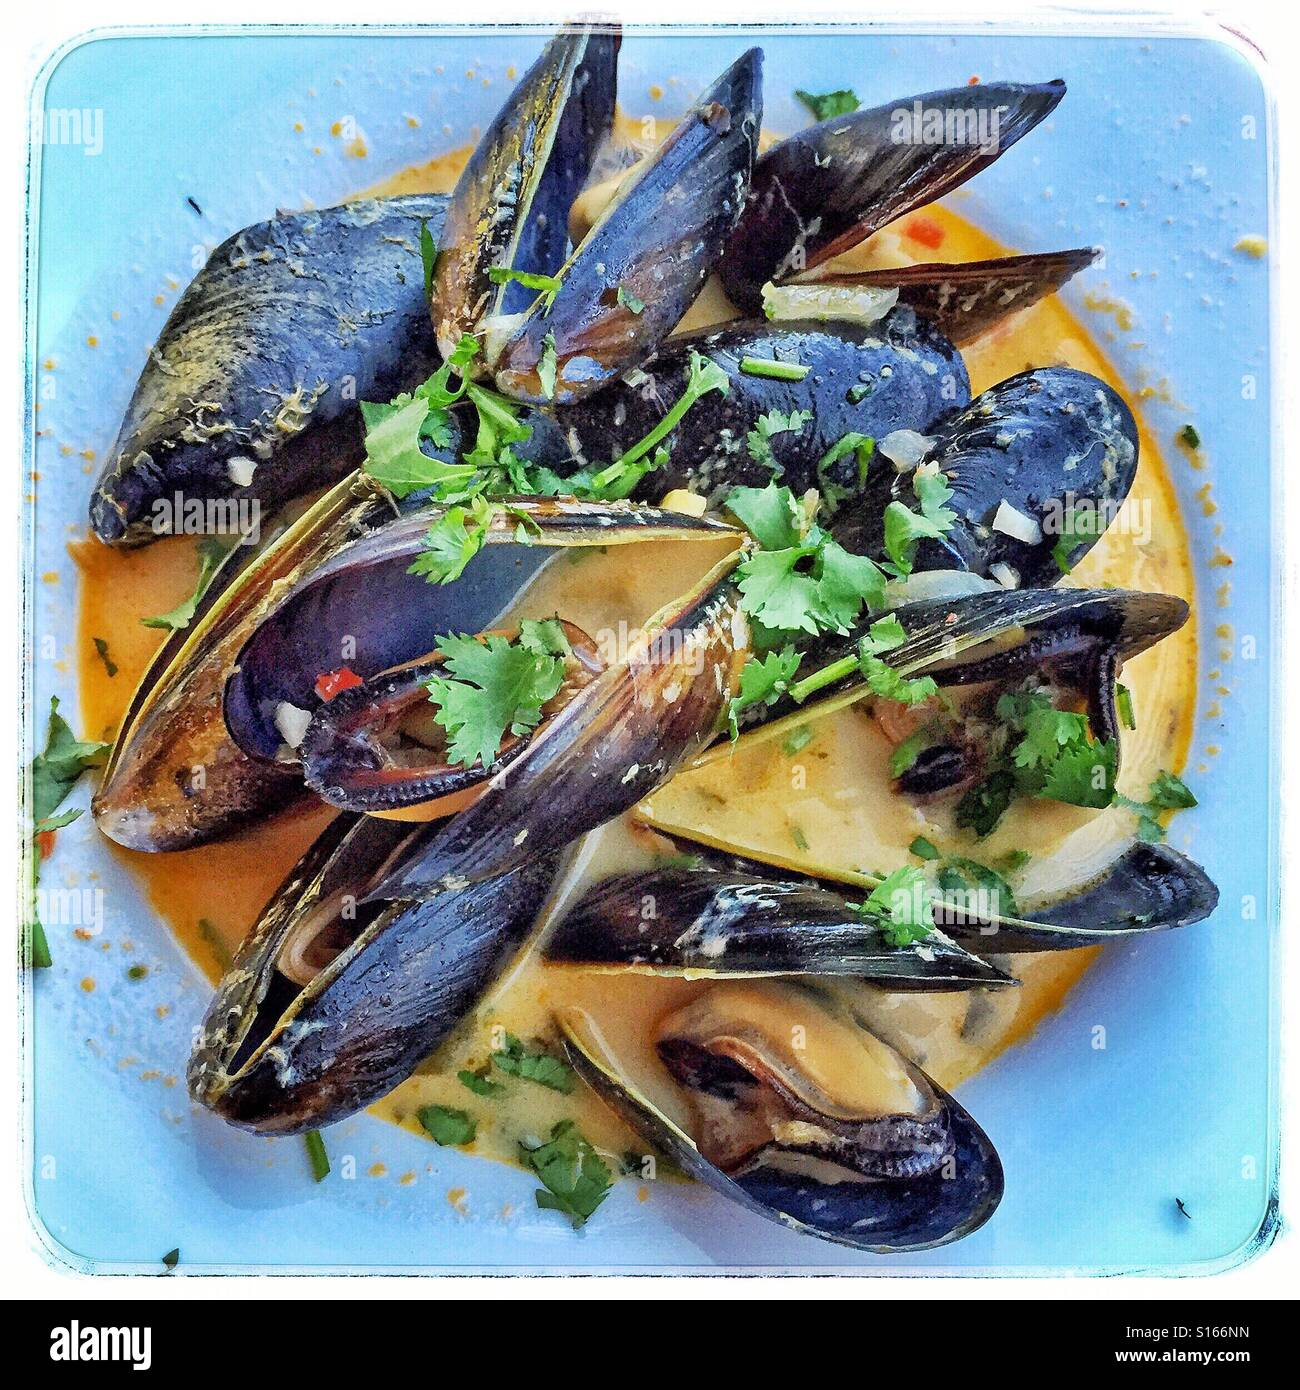 Fresh mussels cooked in a delicious Thai curry sauce. - Stock Image